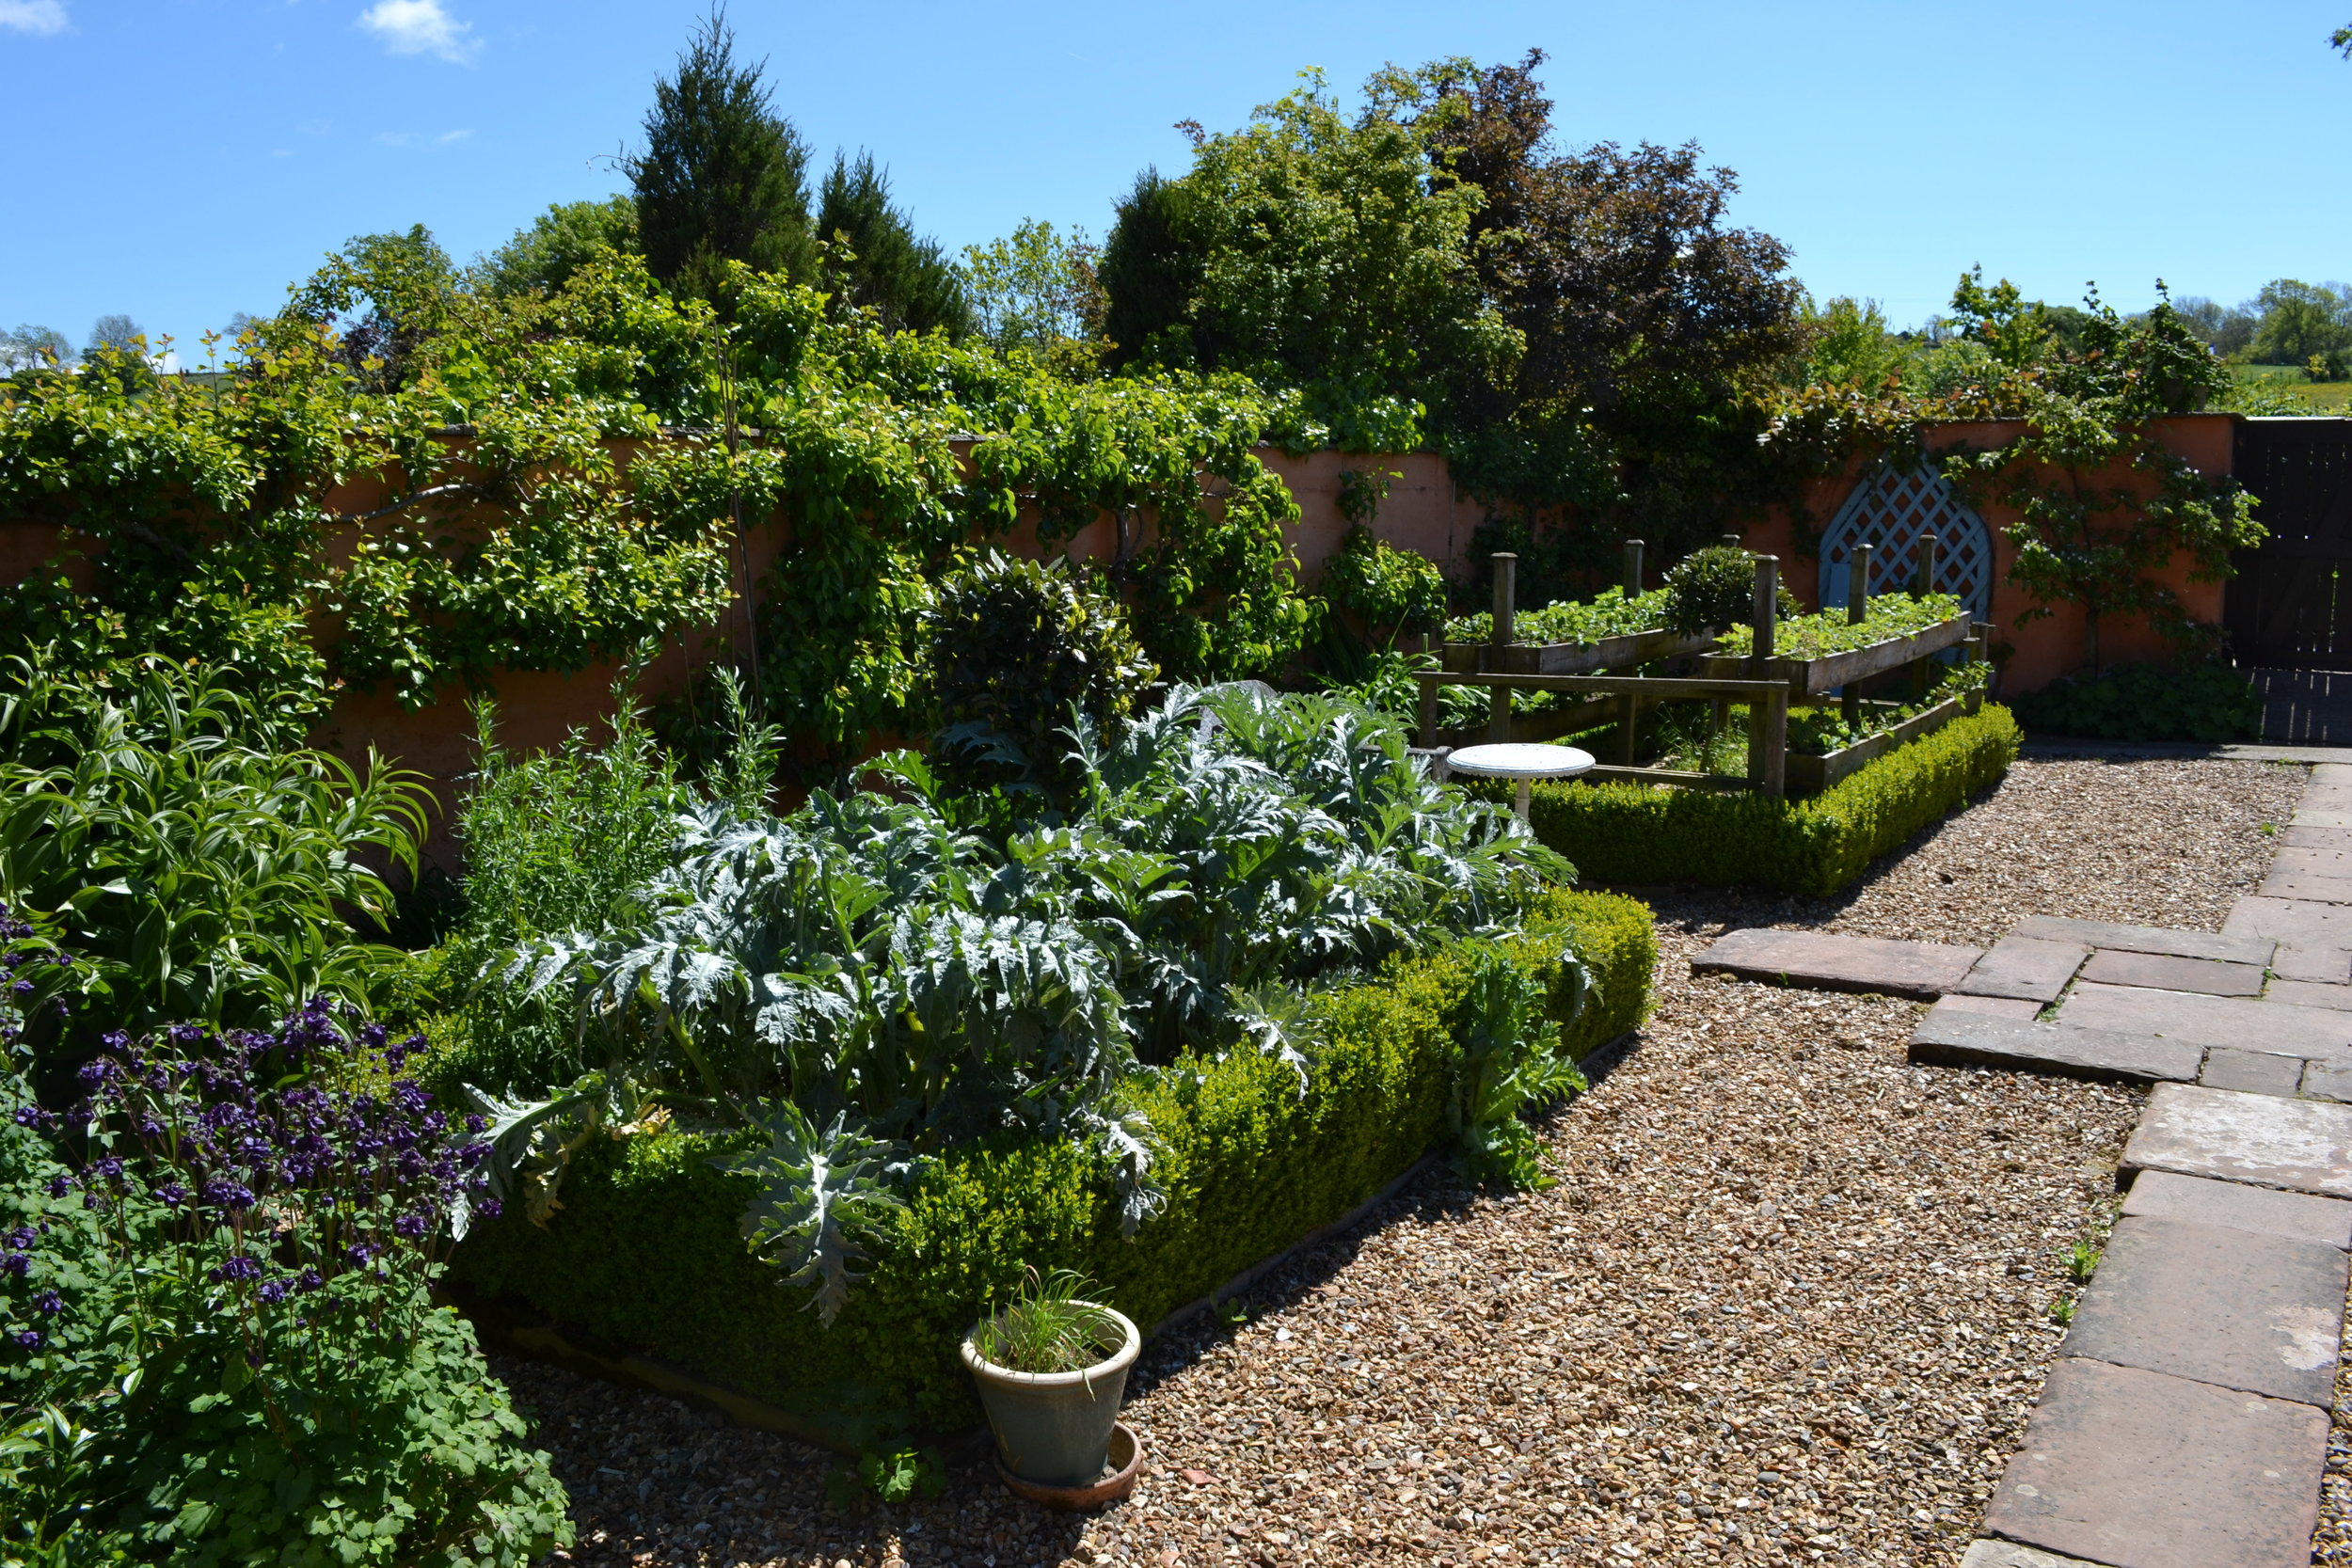 Another view of the walled garden illustrating the unique tiered strawberry planters and some very healthy cardoons in the foreground.